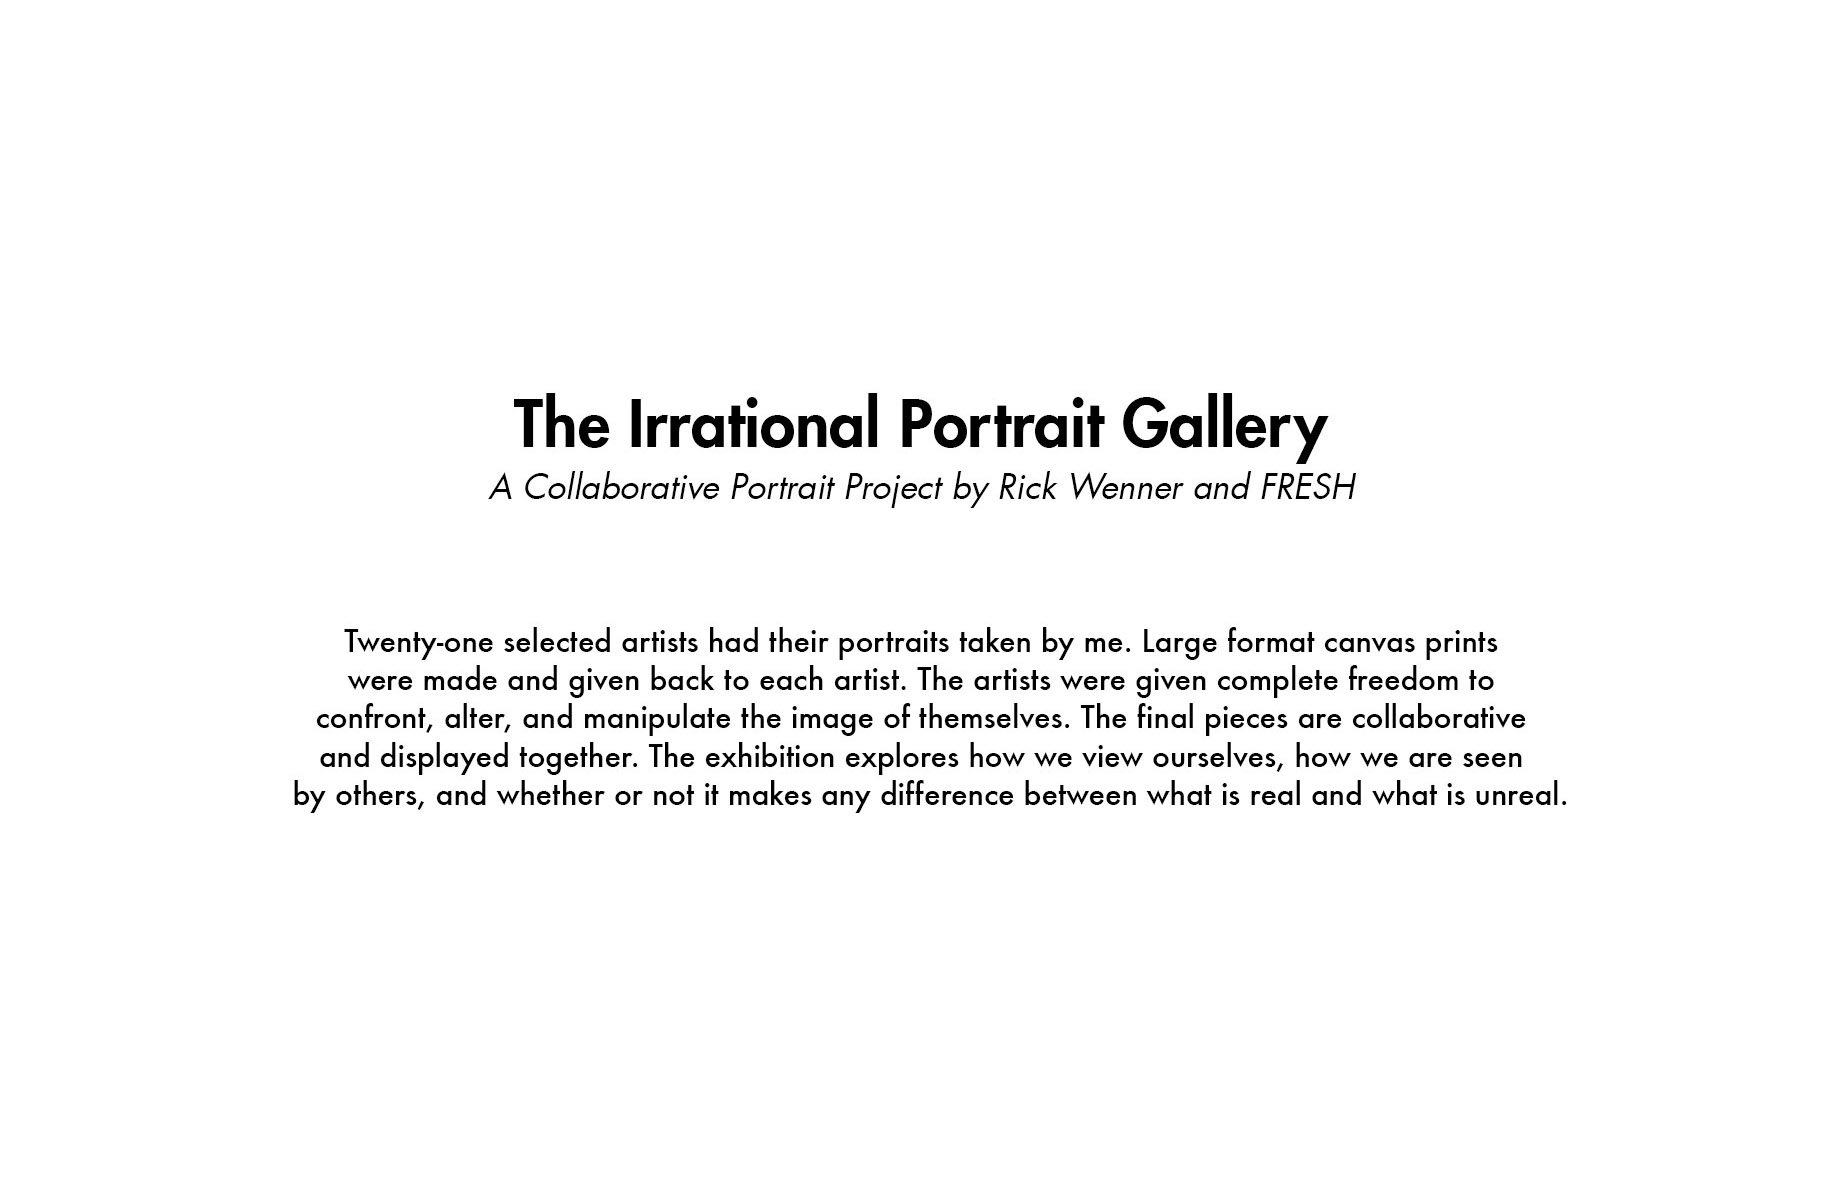 The Irrational Portrait Gallery